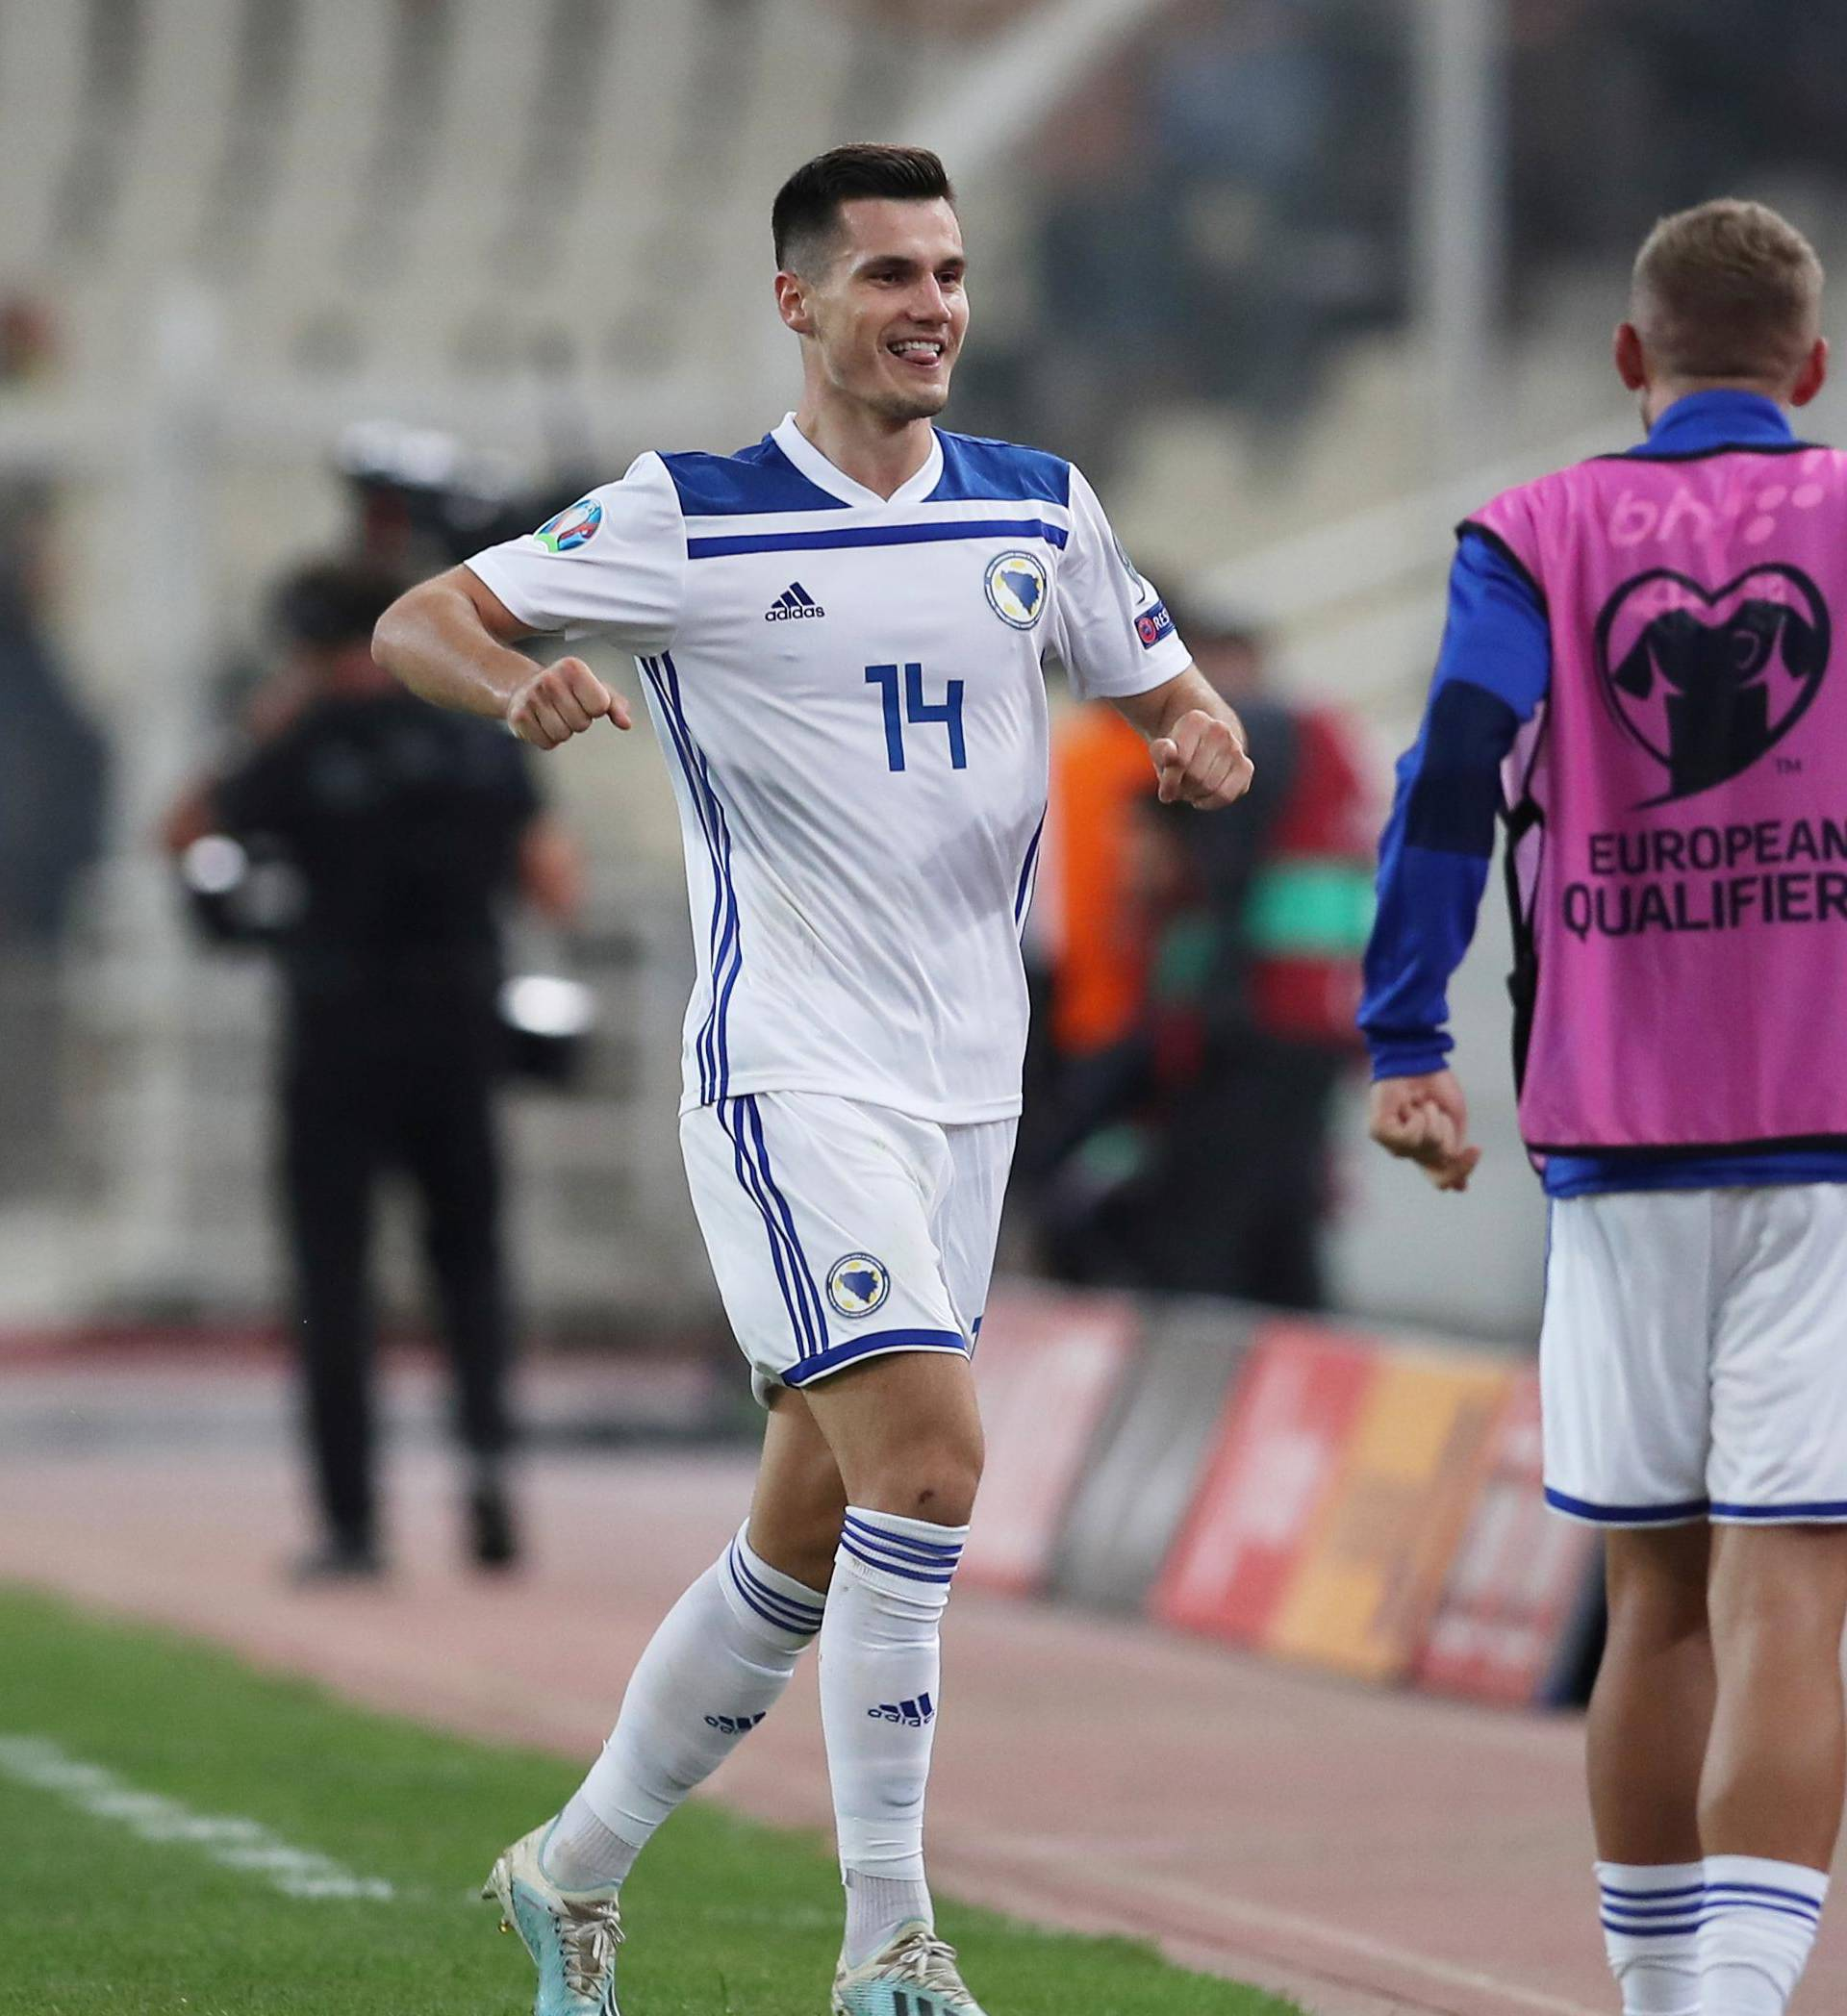 Euro 2020 Qualifier - Group J - Greece v Bosnia and Herzegovina